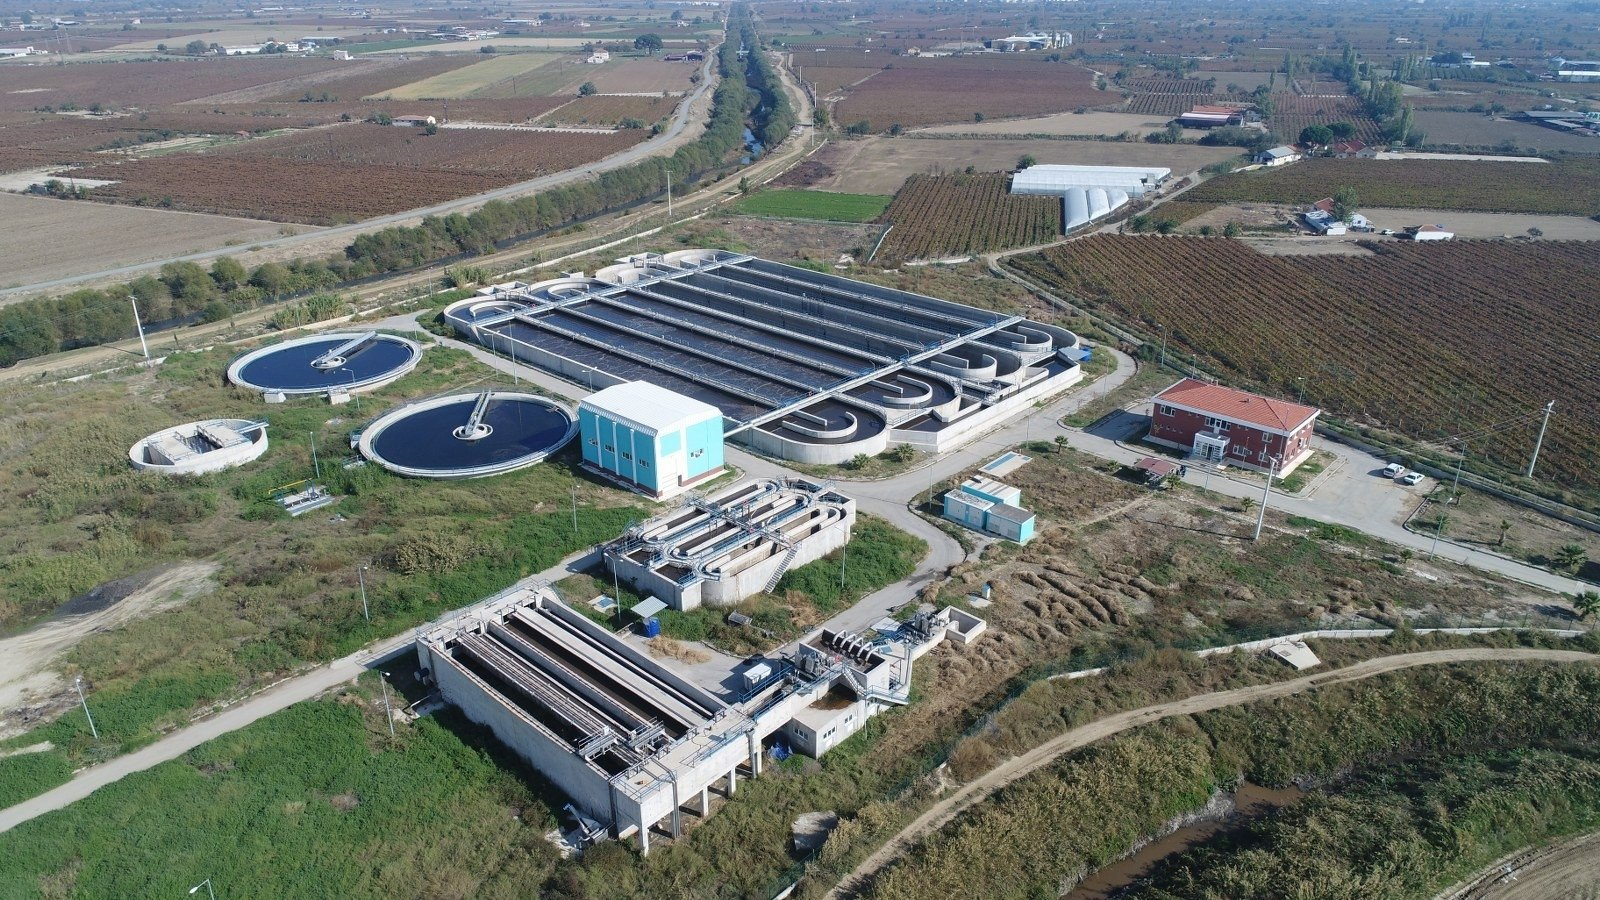 A wastewater treatment facility that received TL 330 million of investment in western Manisa province, Turkey, Nov. 12, 2020. (IHA Photo)